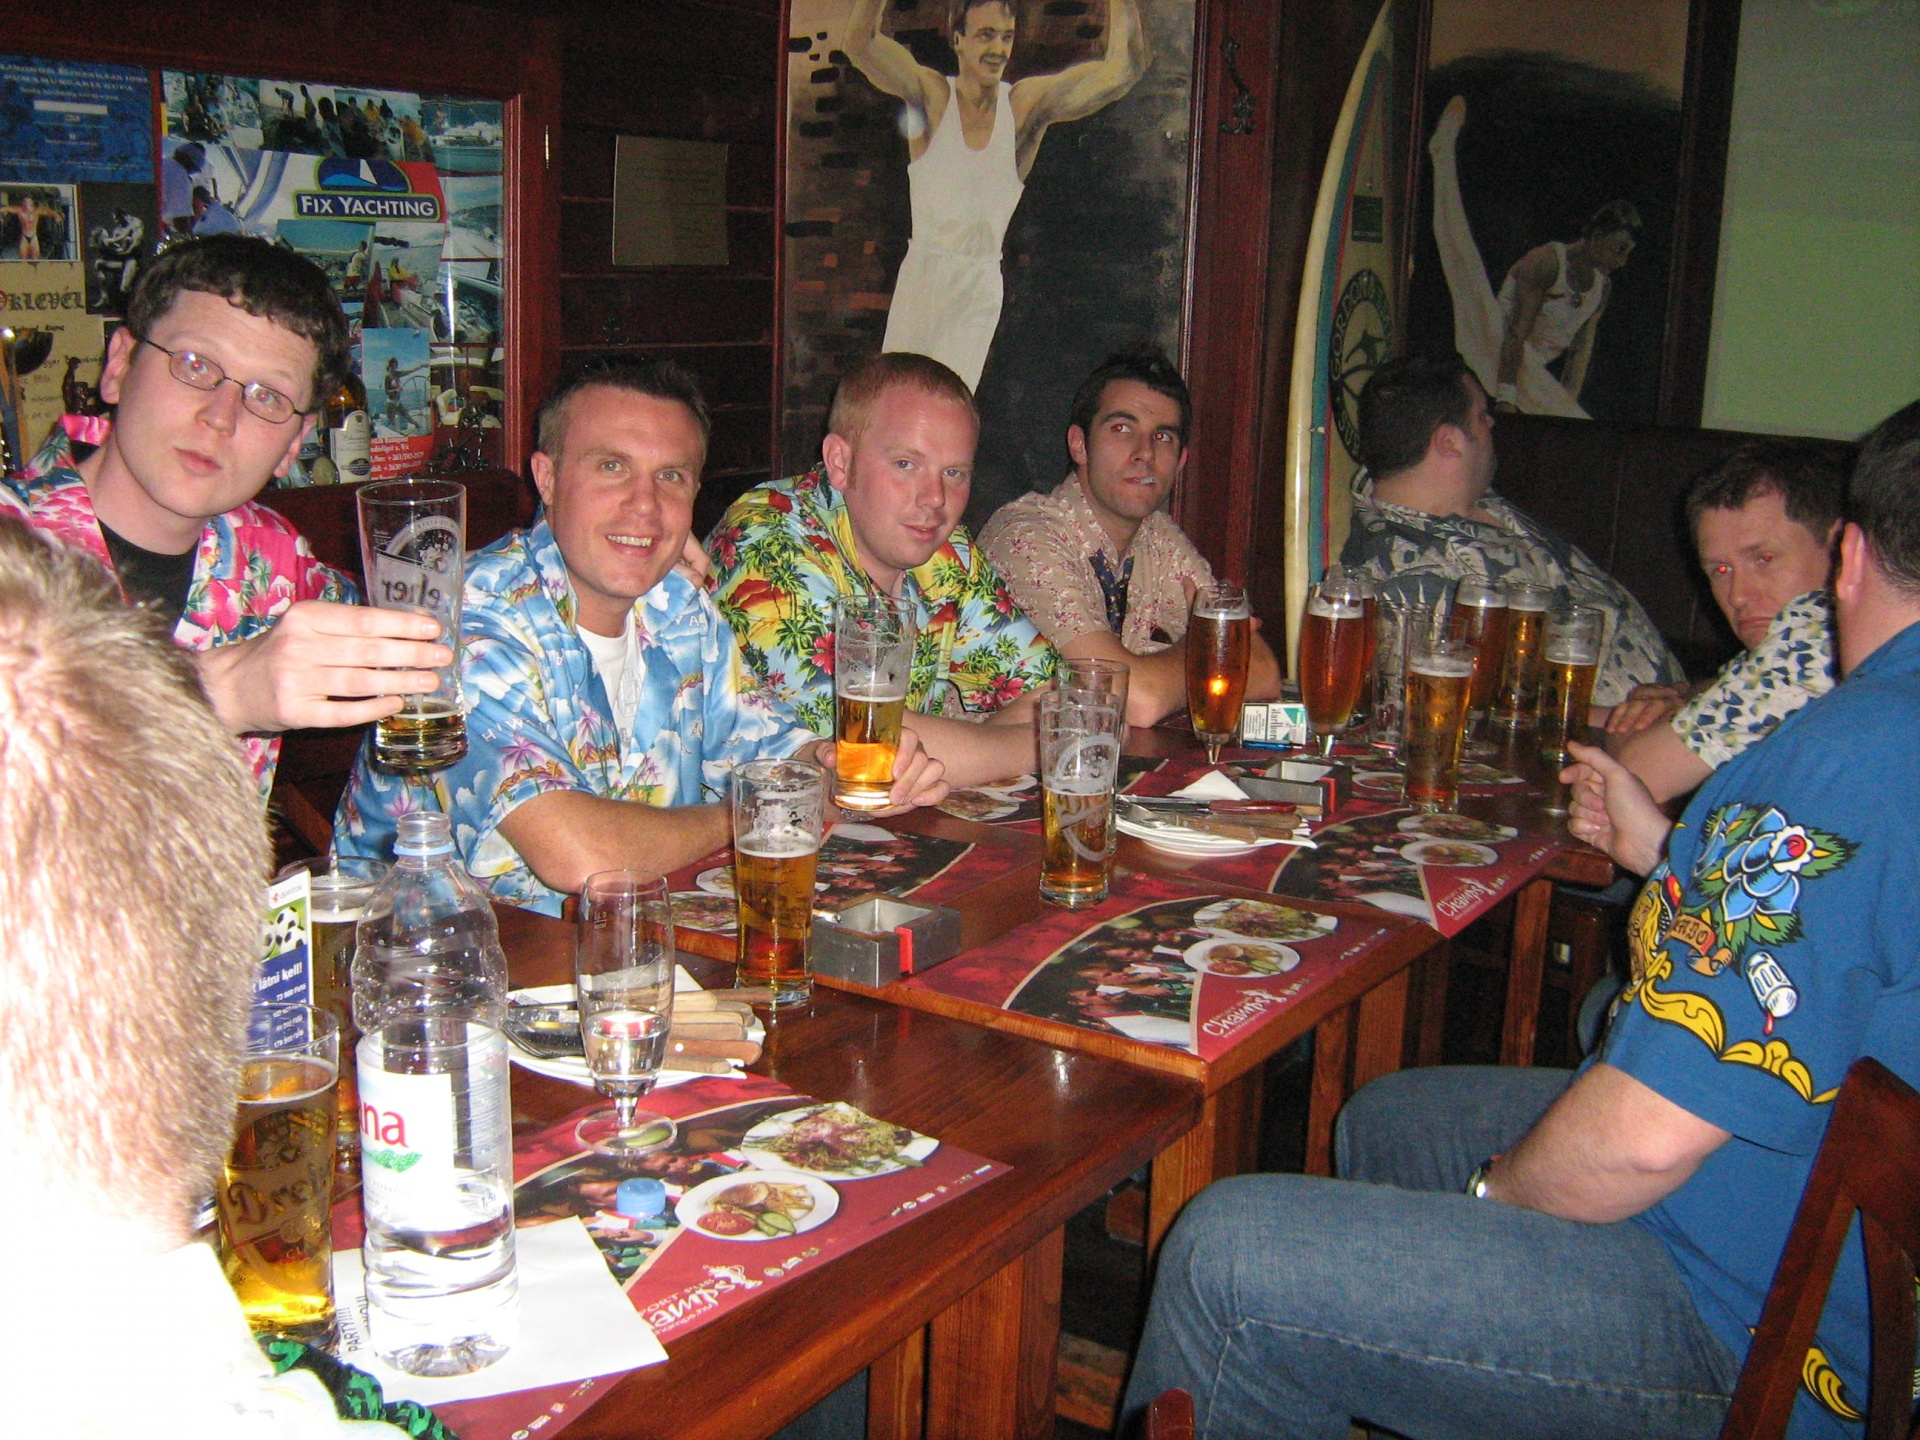 Stag group at meal